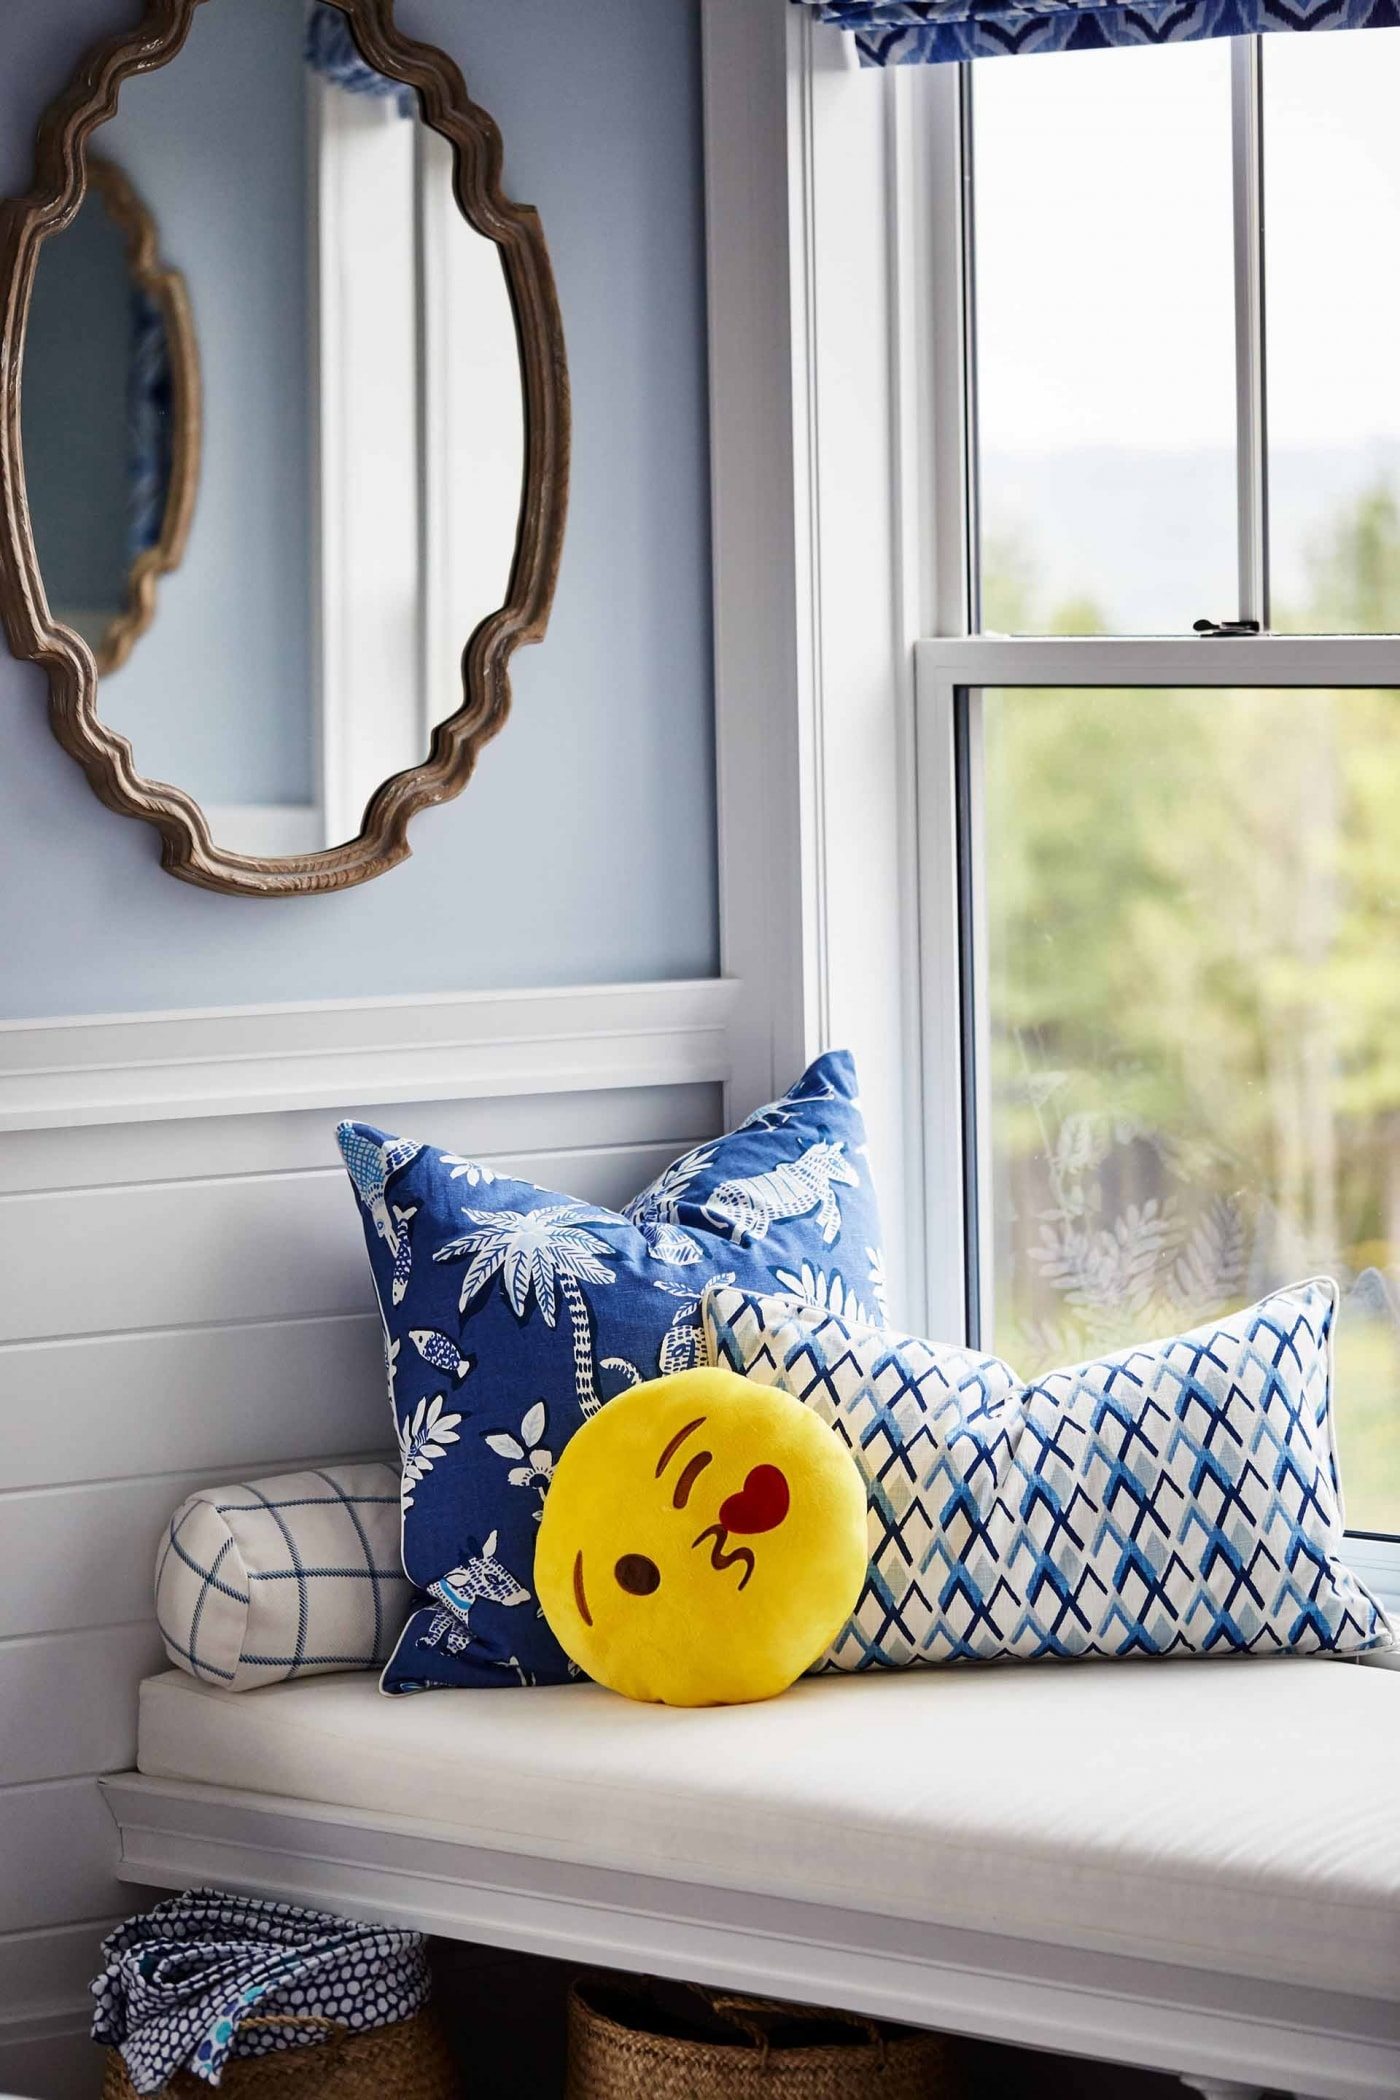 Sweet emoji pillow and blue print pillows on window seat in blue girl's room